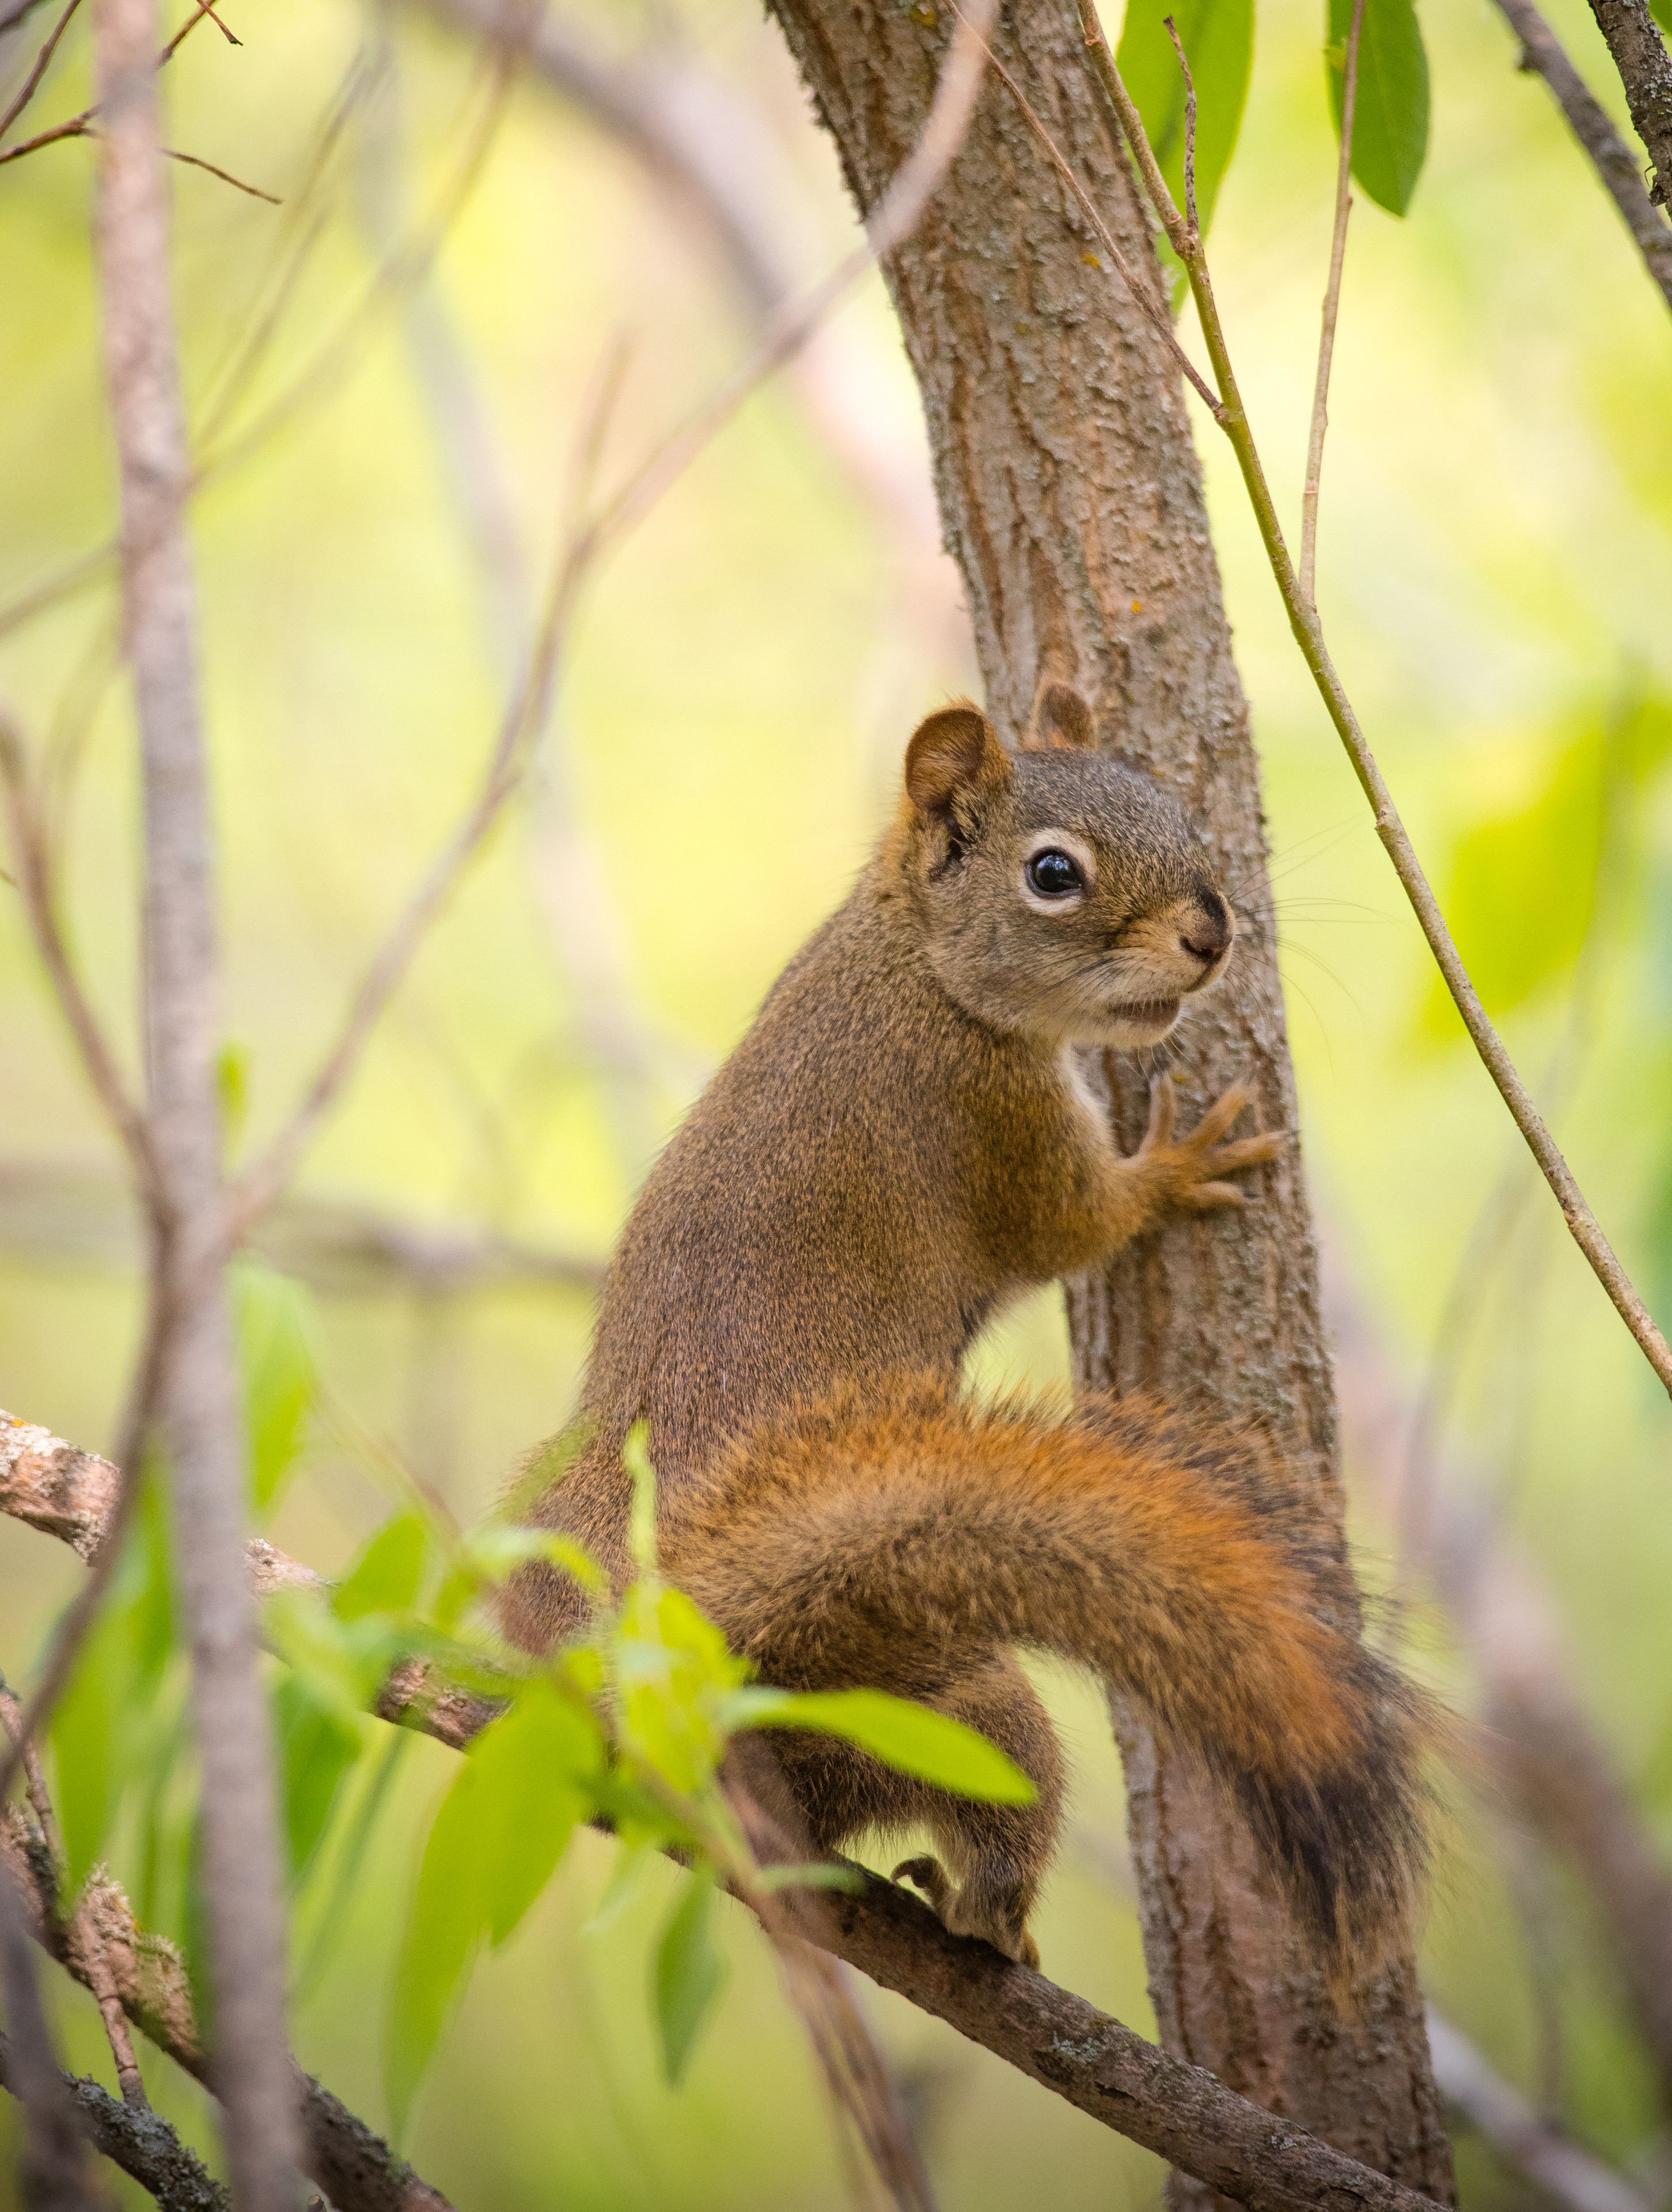 97528 download wallpaper Animals, Squirrel, Rodent, Nice, Sweetheart, Tail screensavers and pictures for free